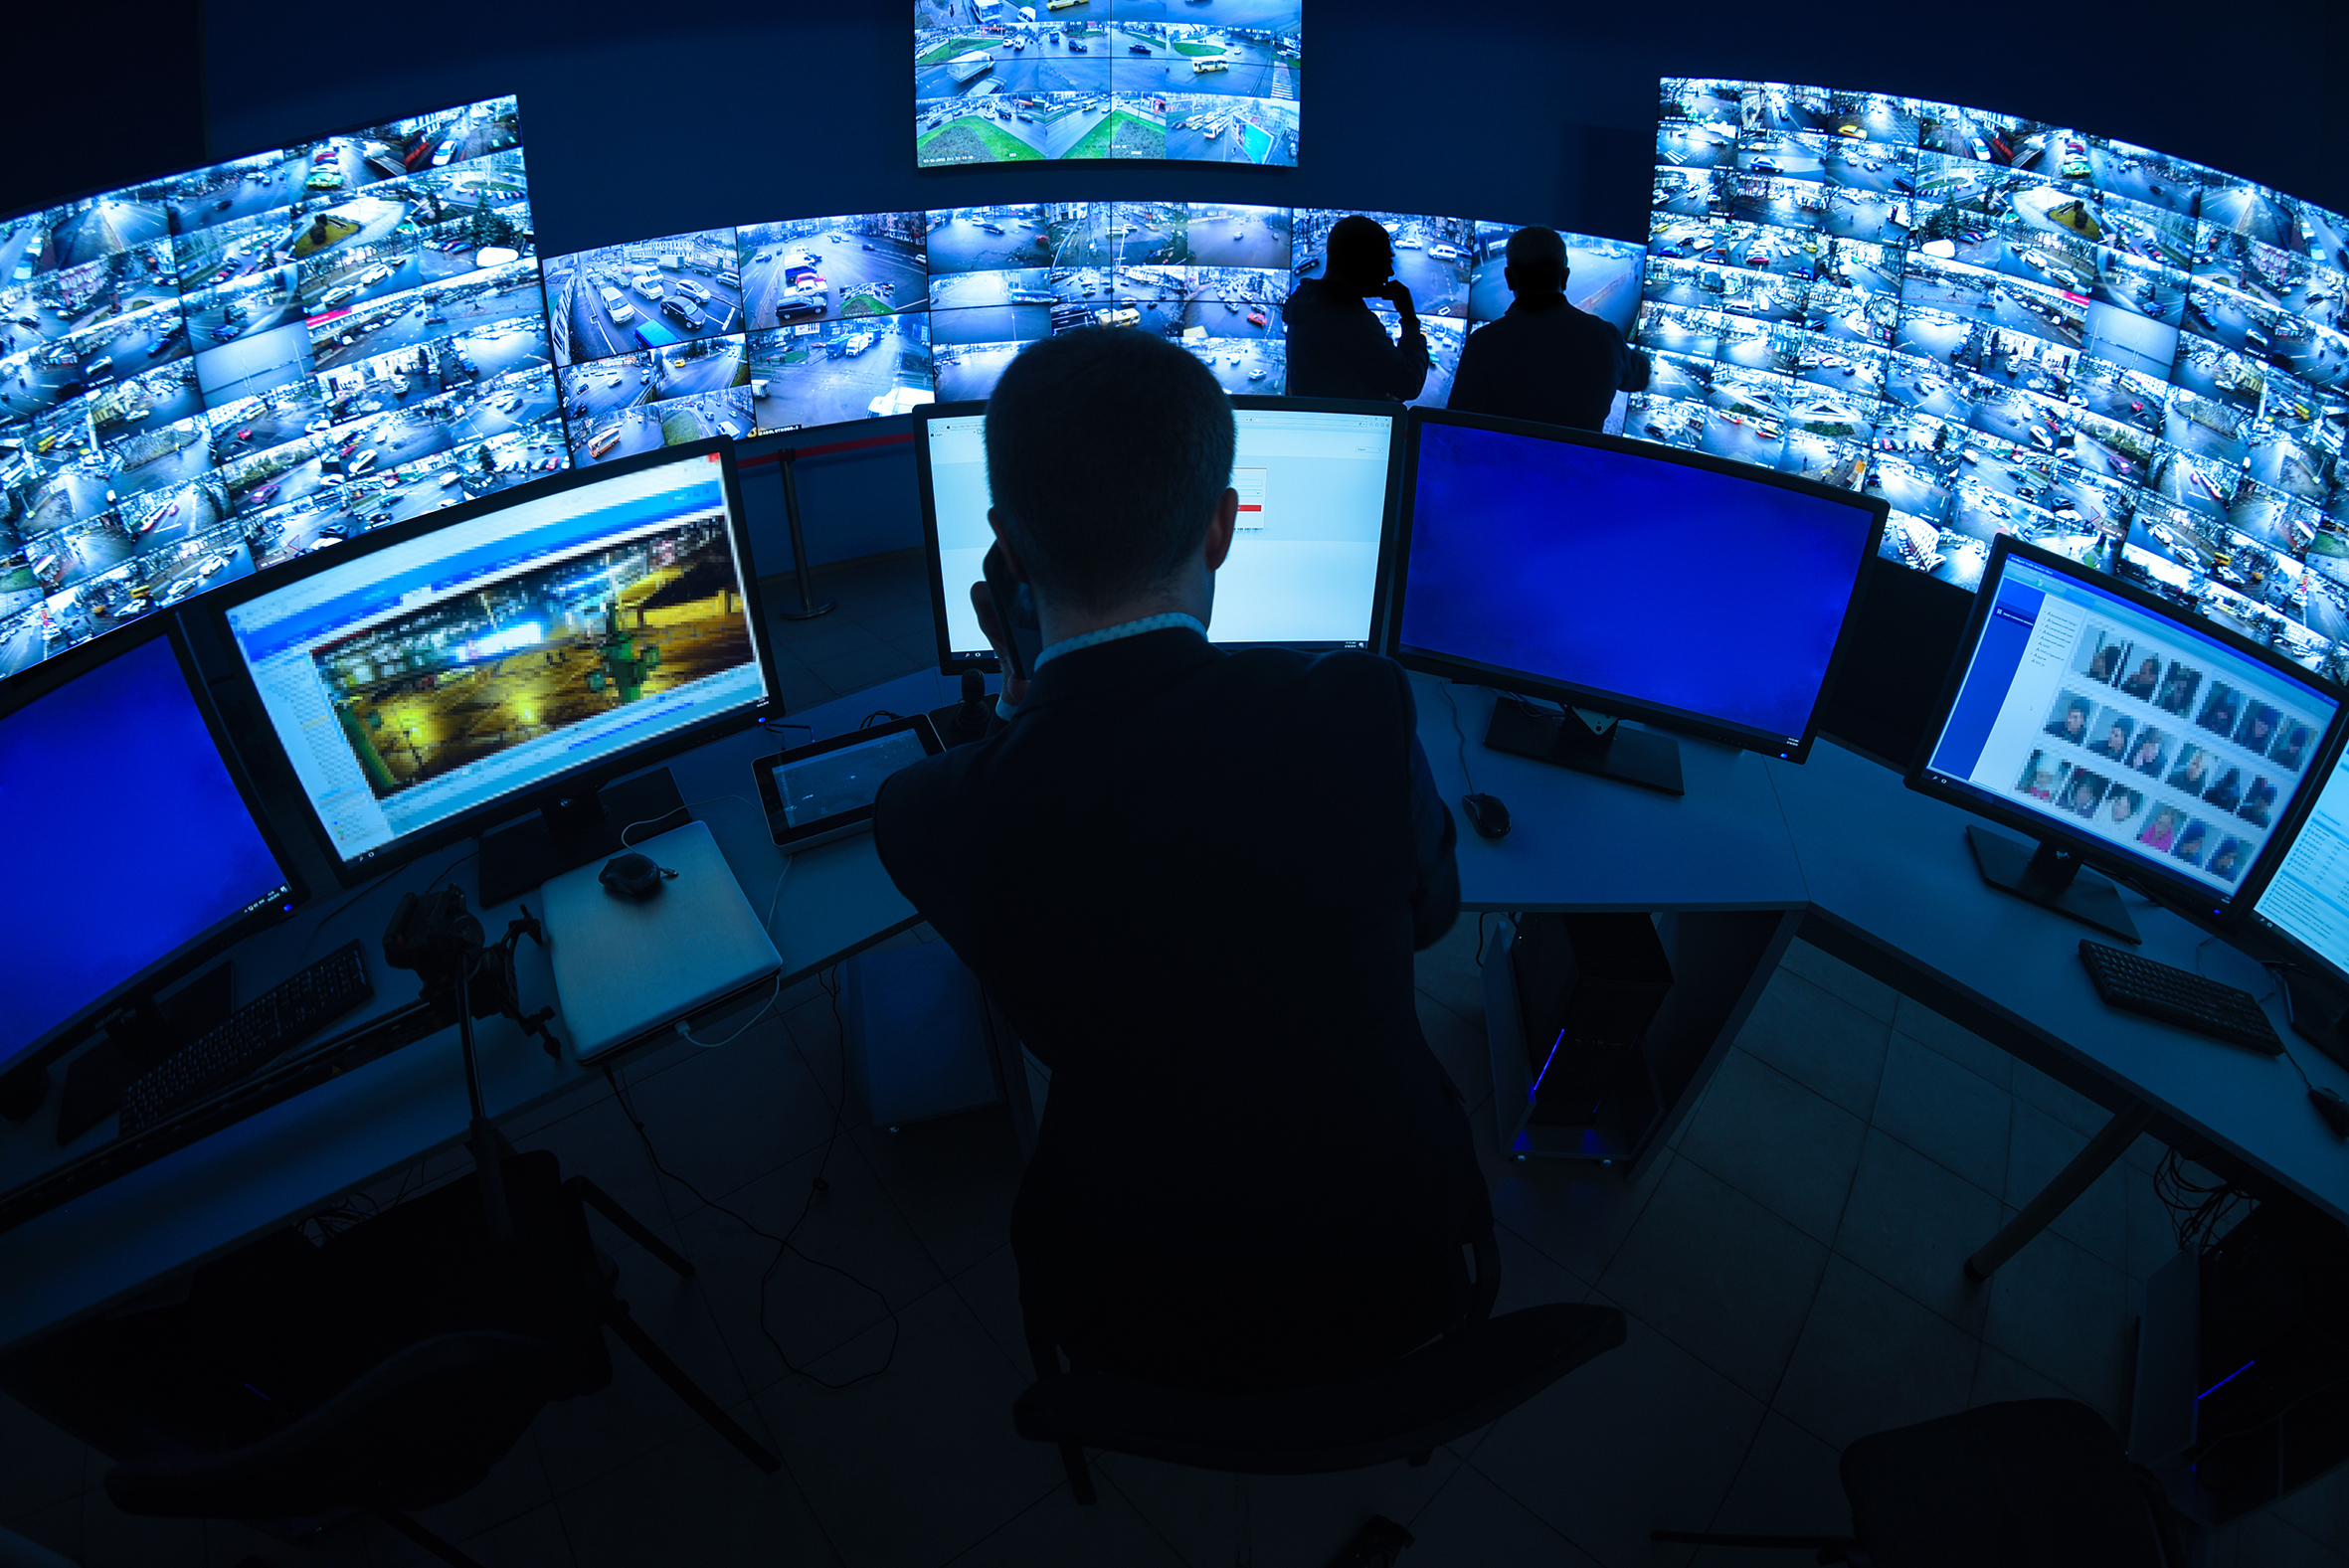 Photo of a security guard in a security monitoring center surrounded by live security camera feeds